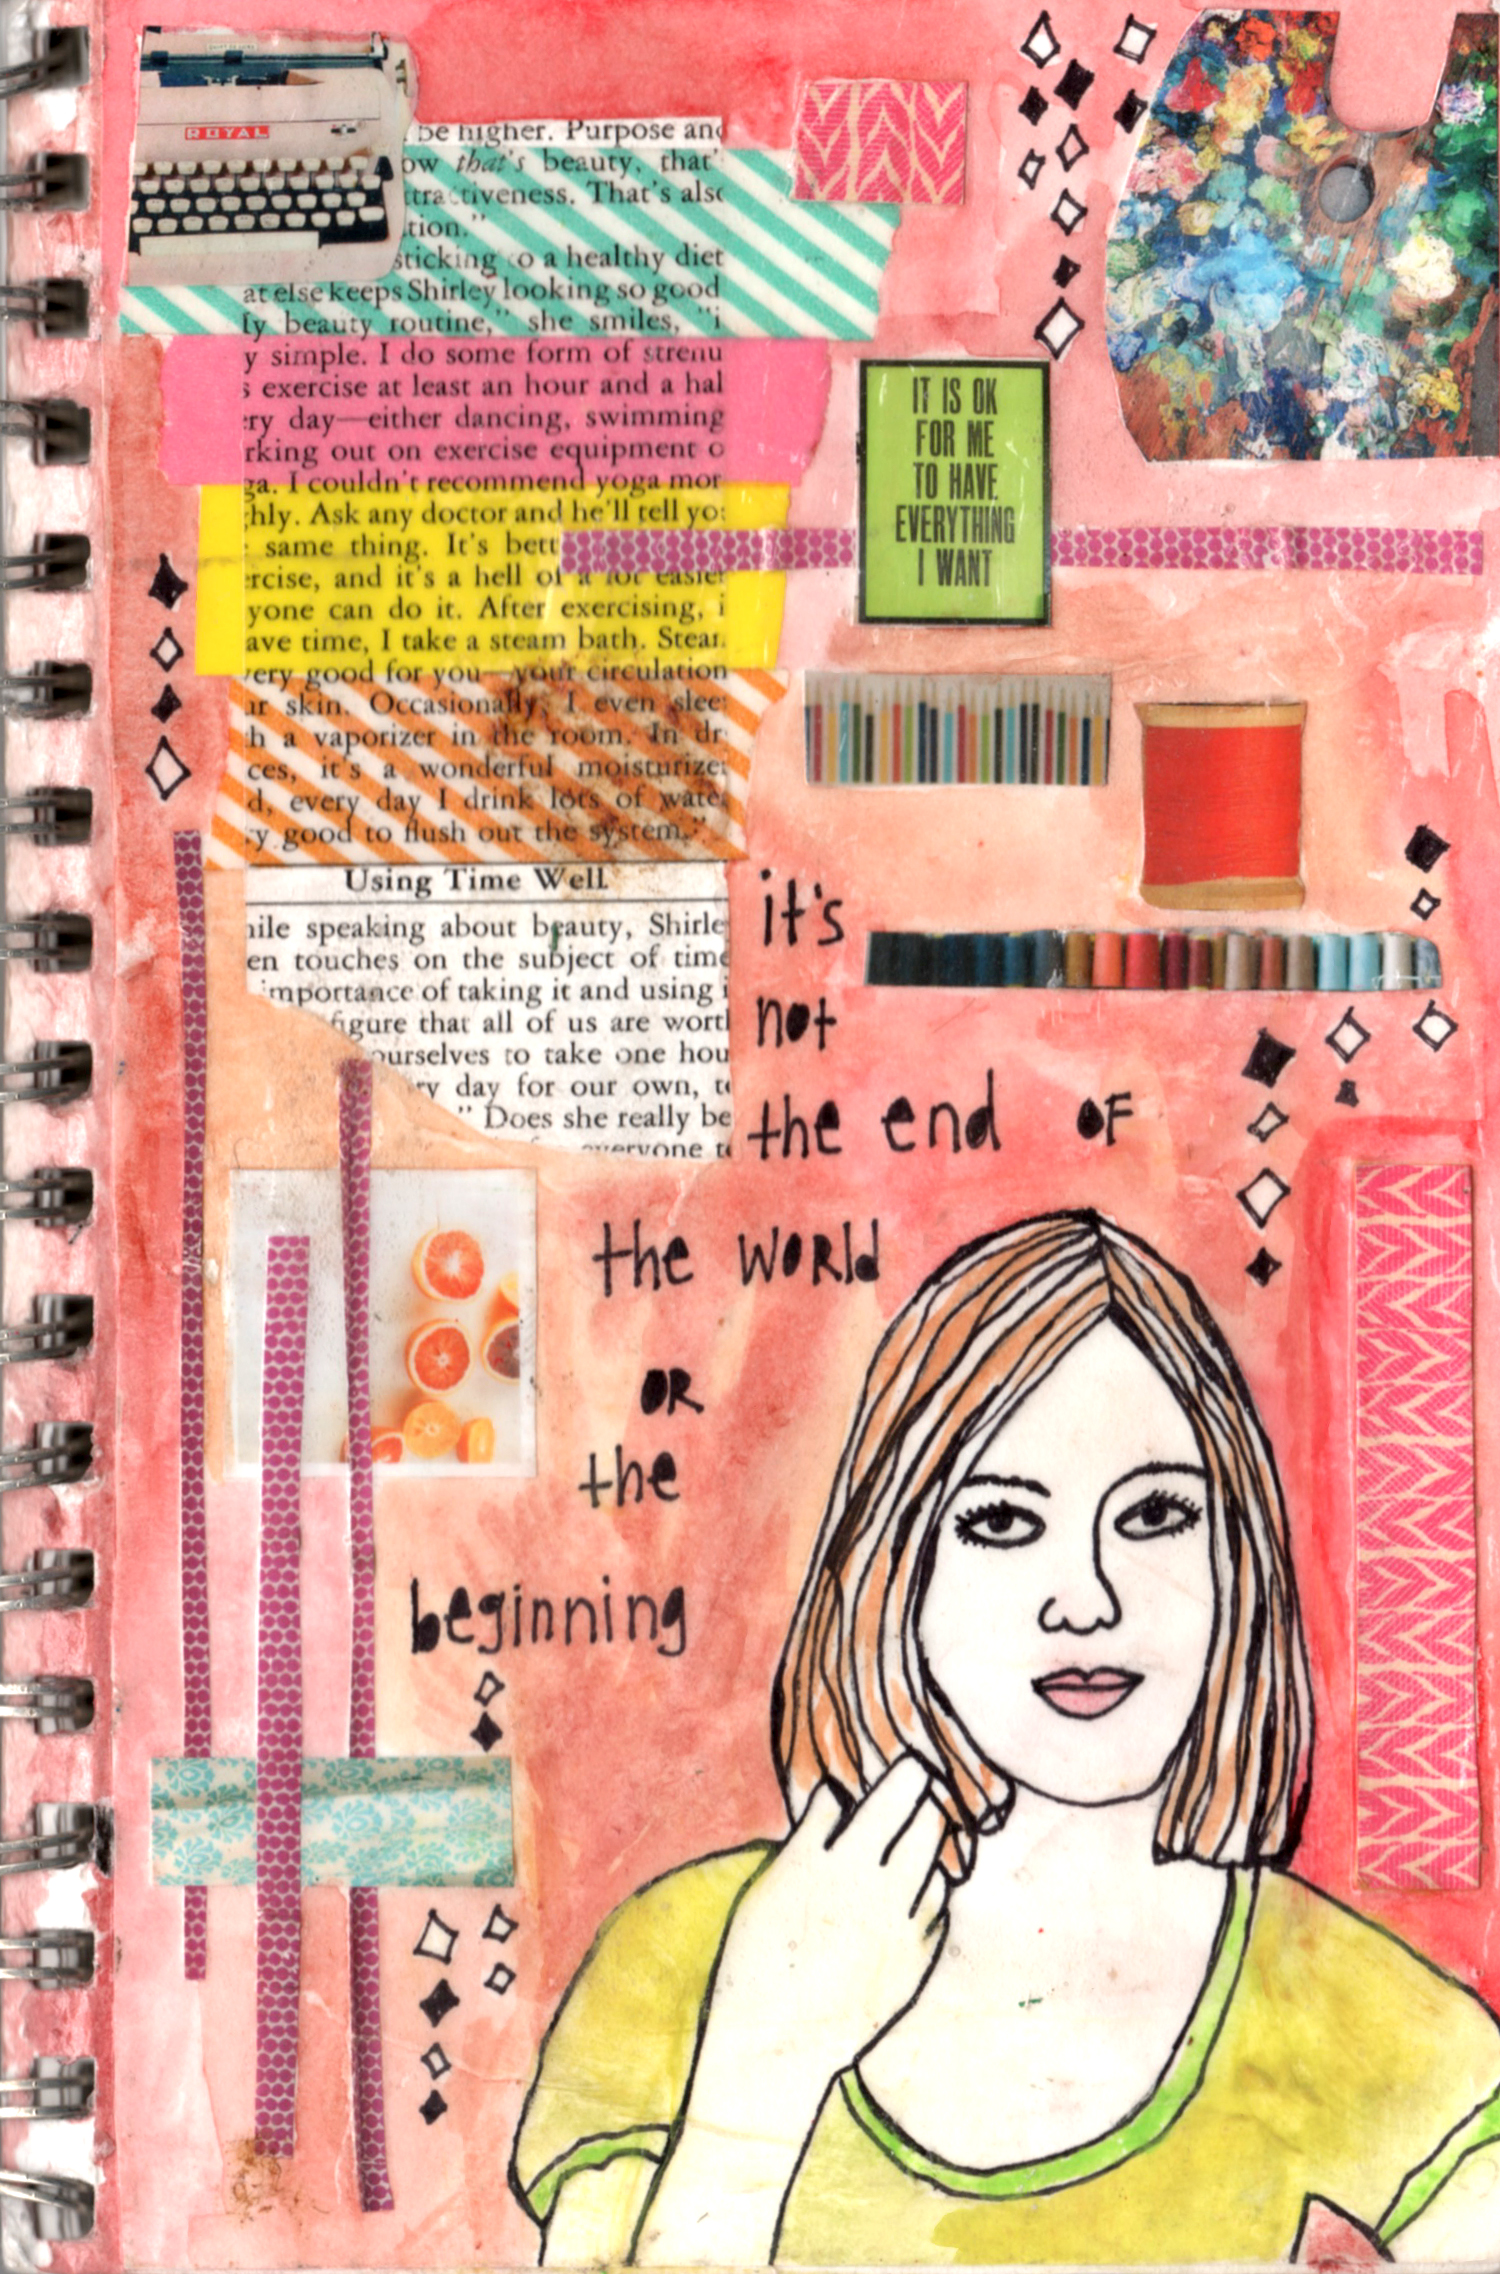 its not the end cover mixed media collage nicole stevenson studio.jpg